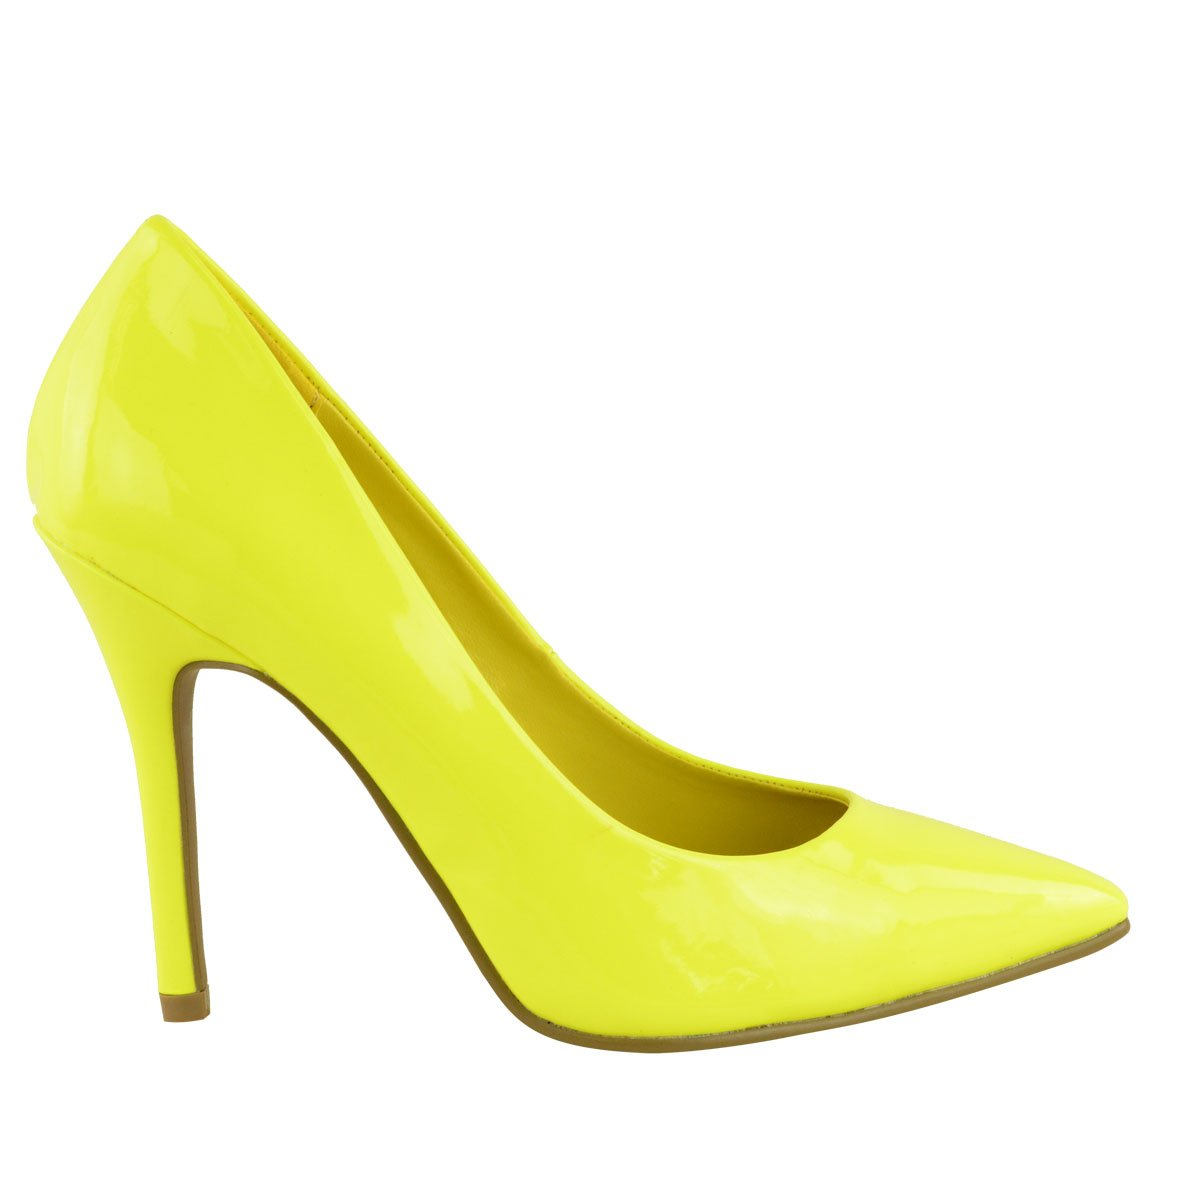 WOMENS LADIES LOW MID HIGH HEEL POINTED TOE PUMPS SMART OFFICE WORK COURT SHOES SIZE